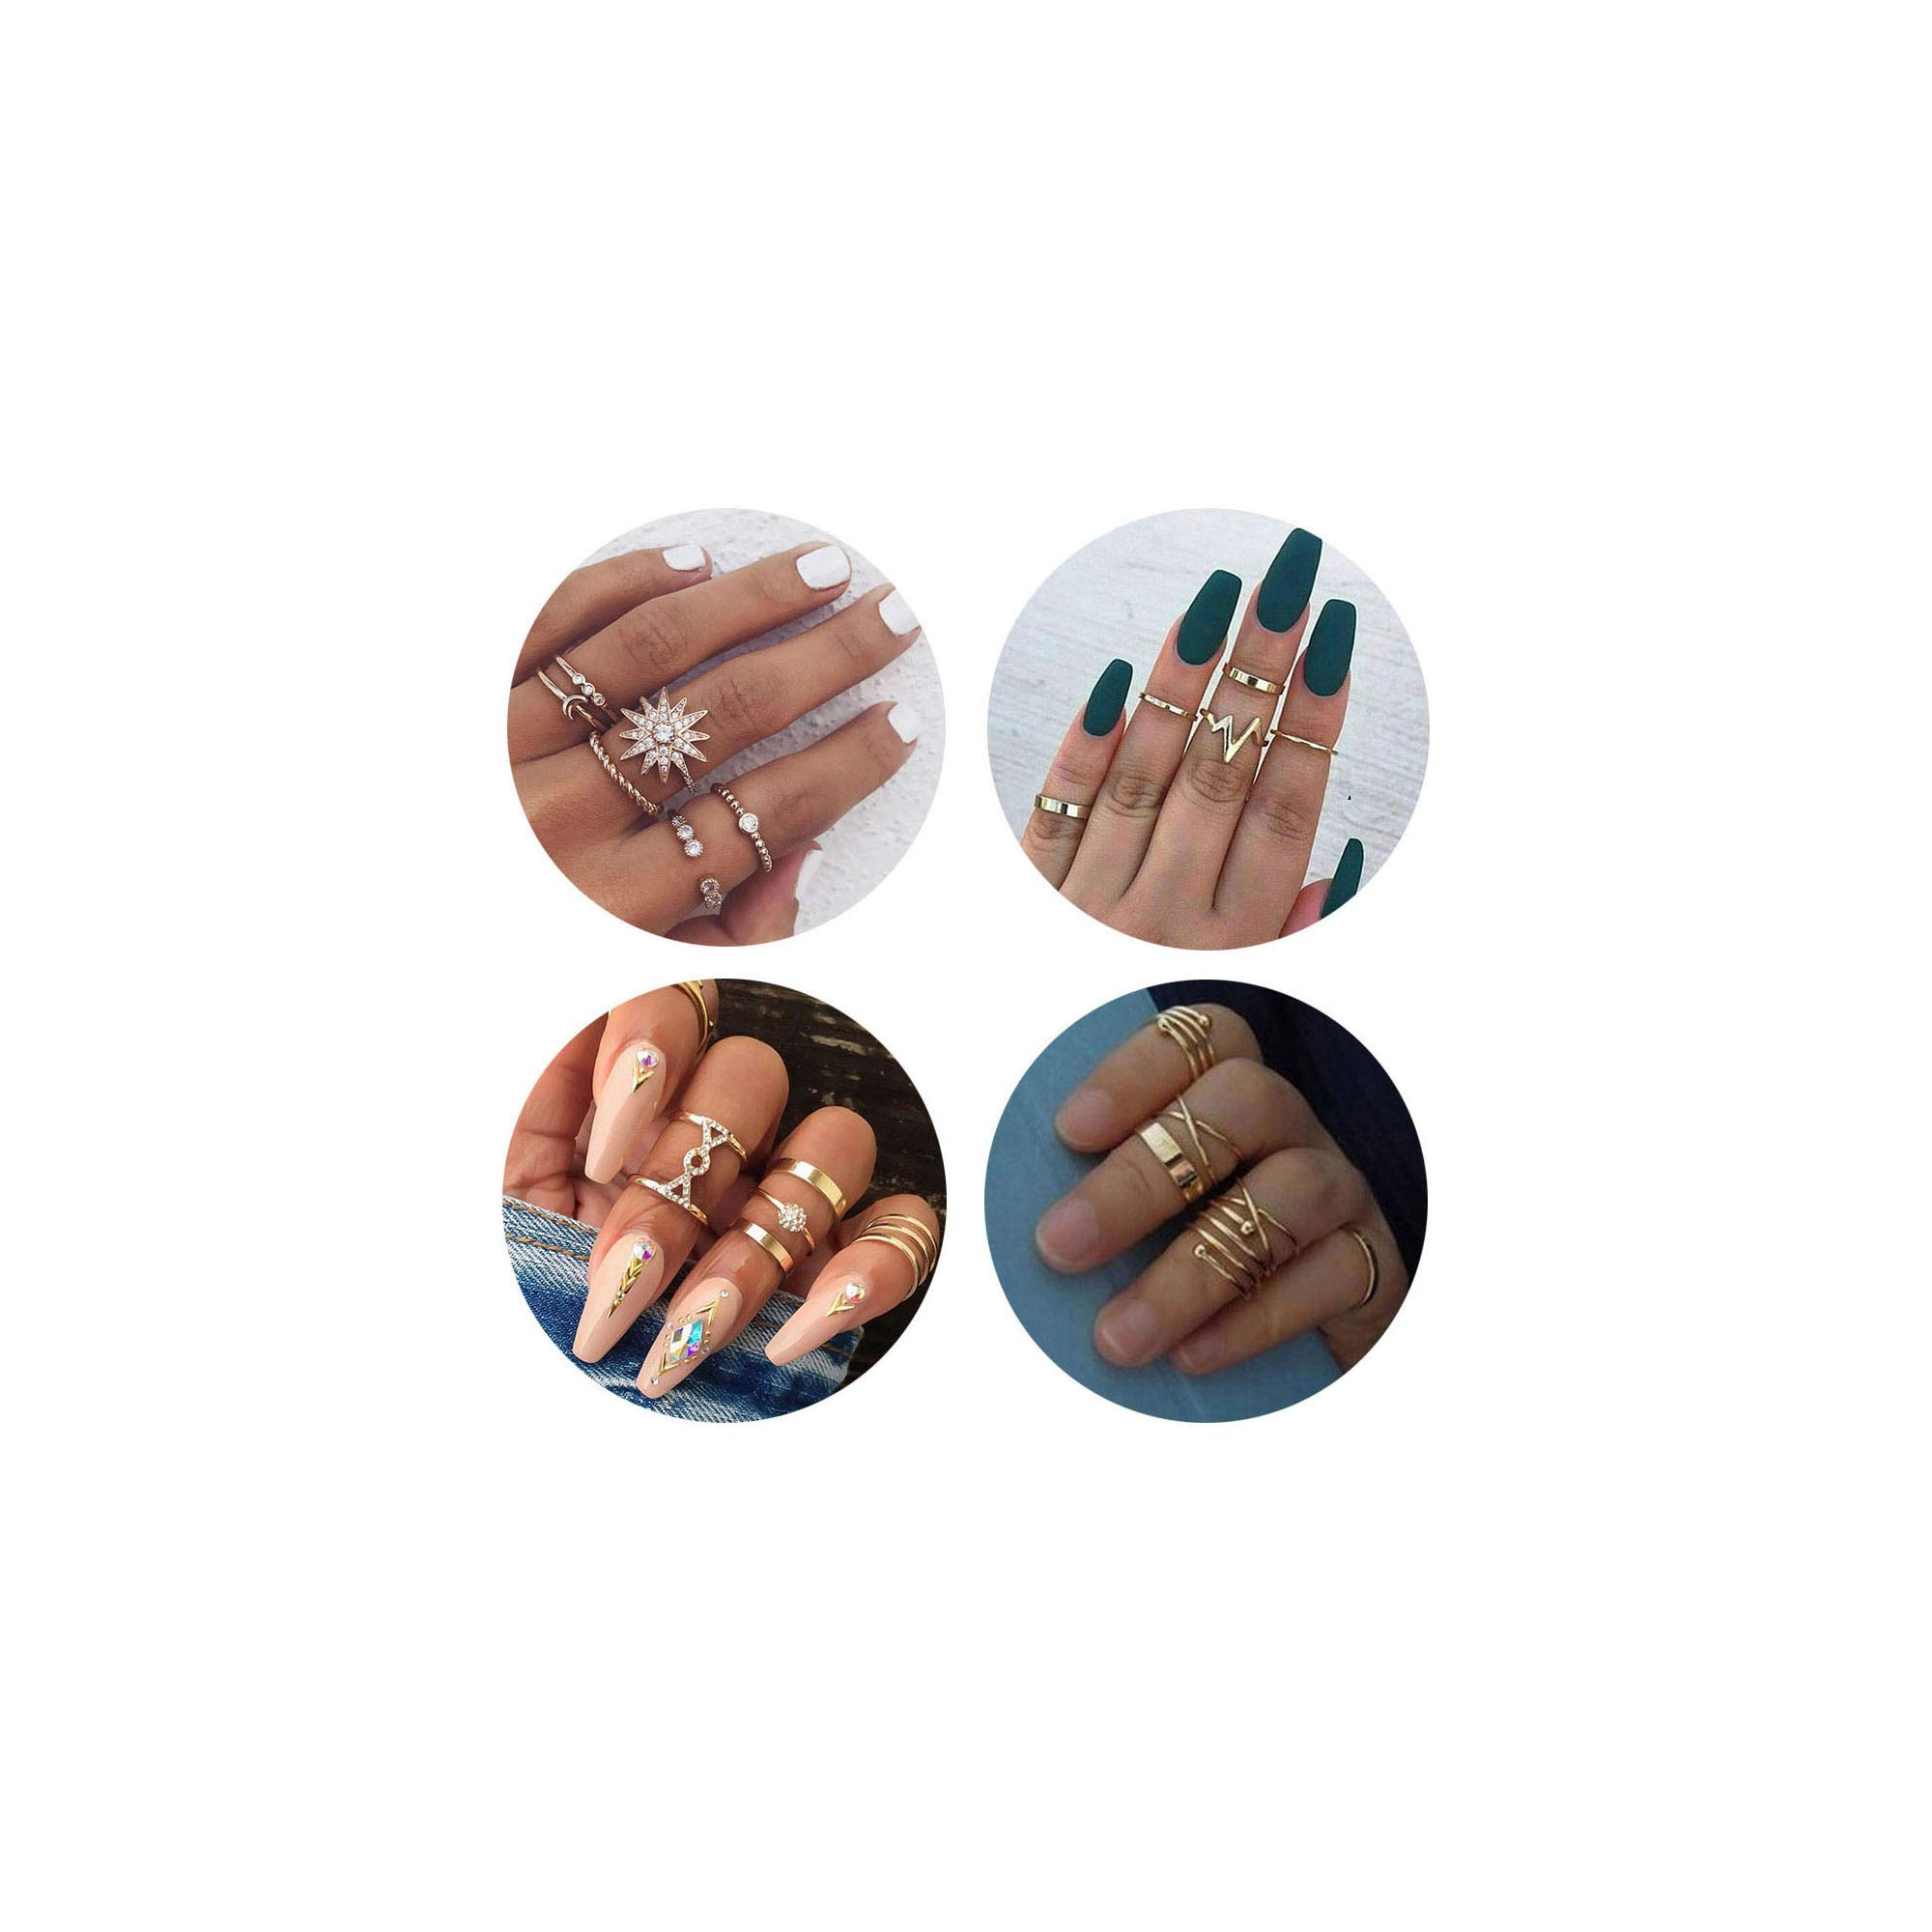 QXFQJT Knuckle Ring Set Vintage Stackable Midi Finger Rings Set for Women Girl Hollow Carved Flowers (22pcs-Gold)